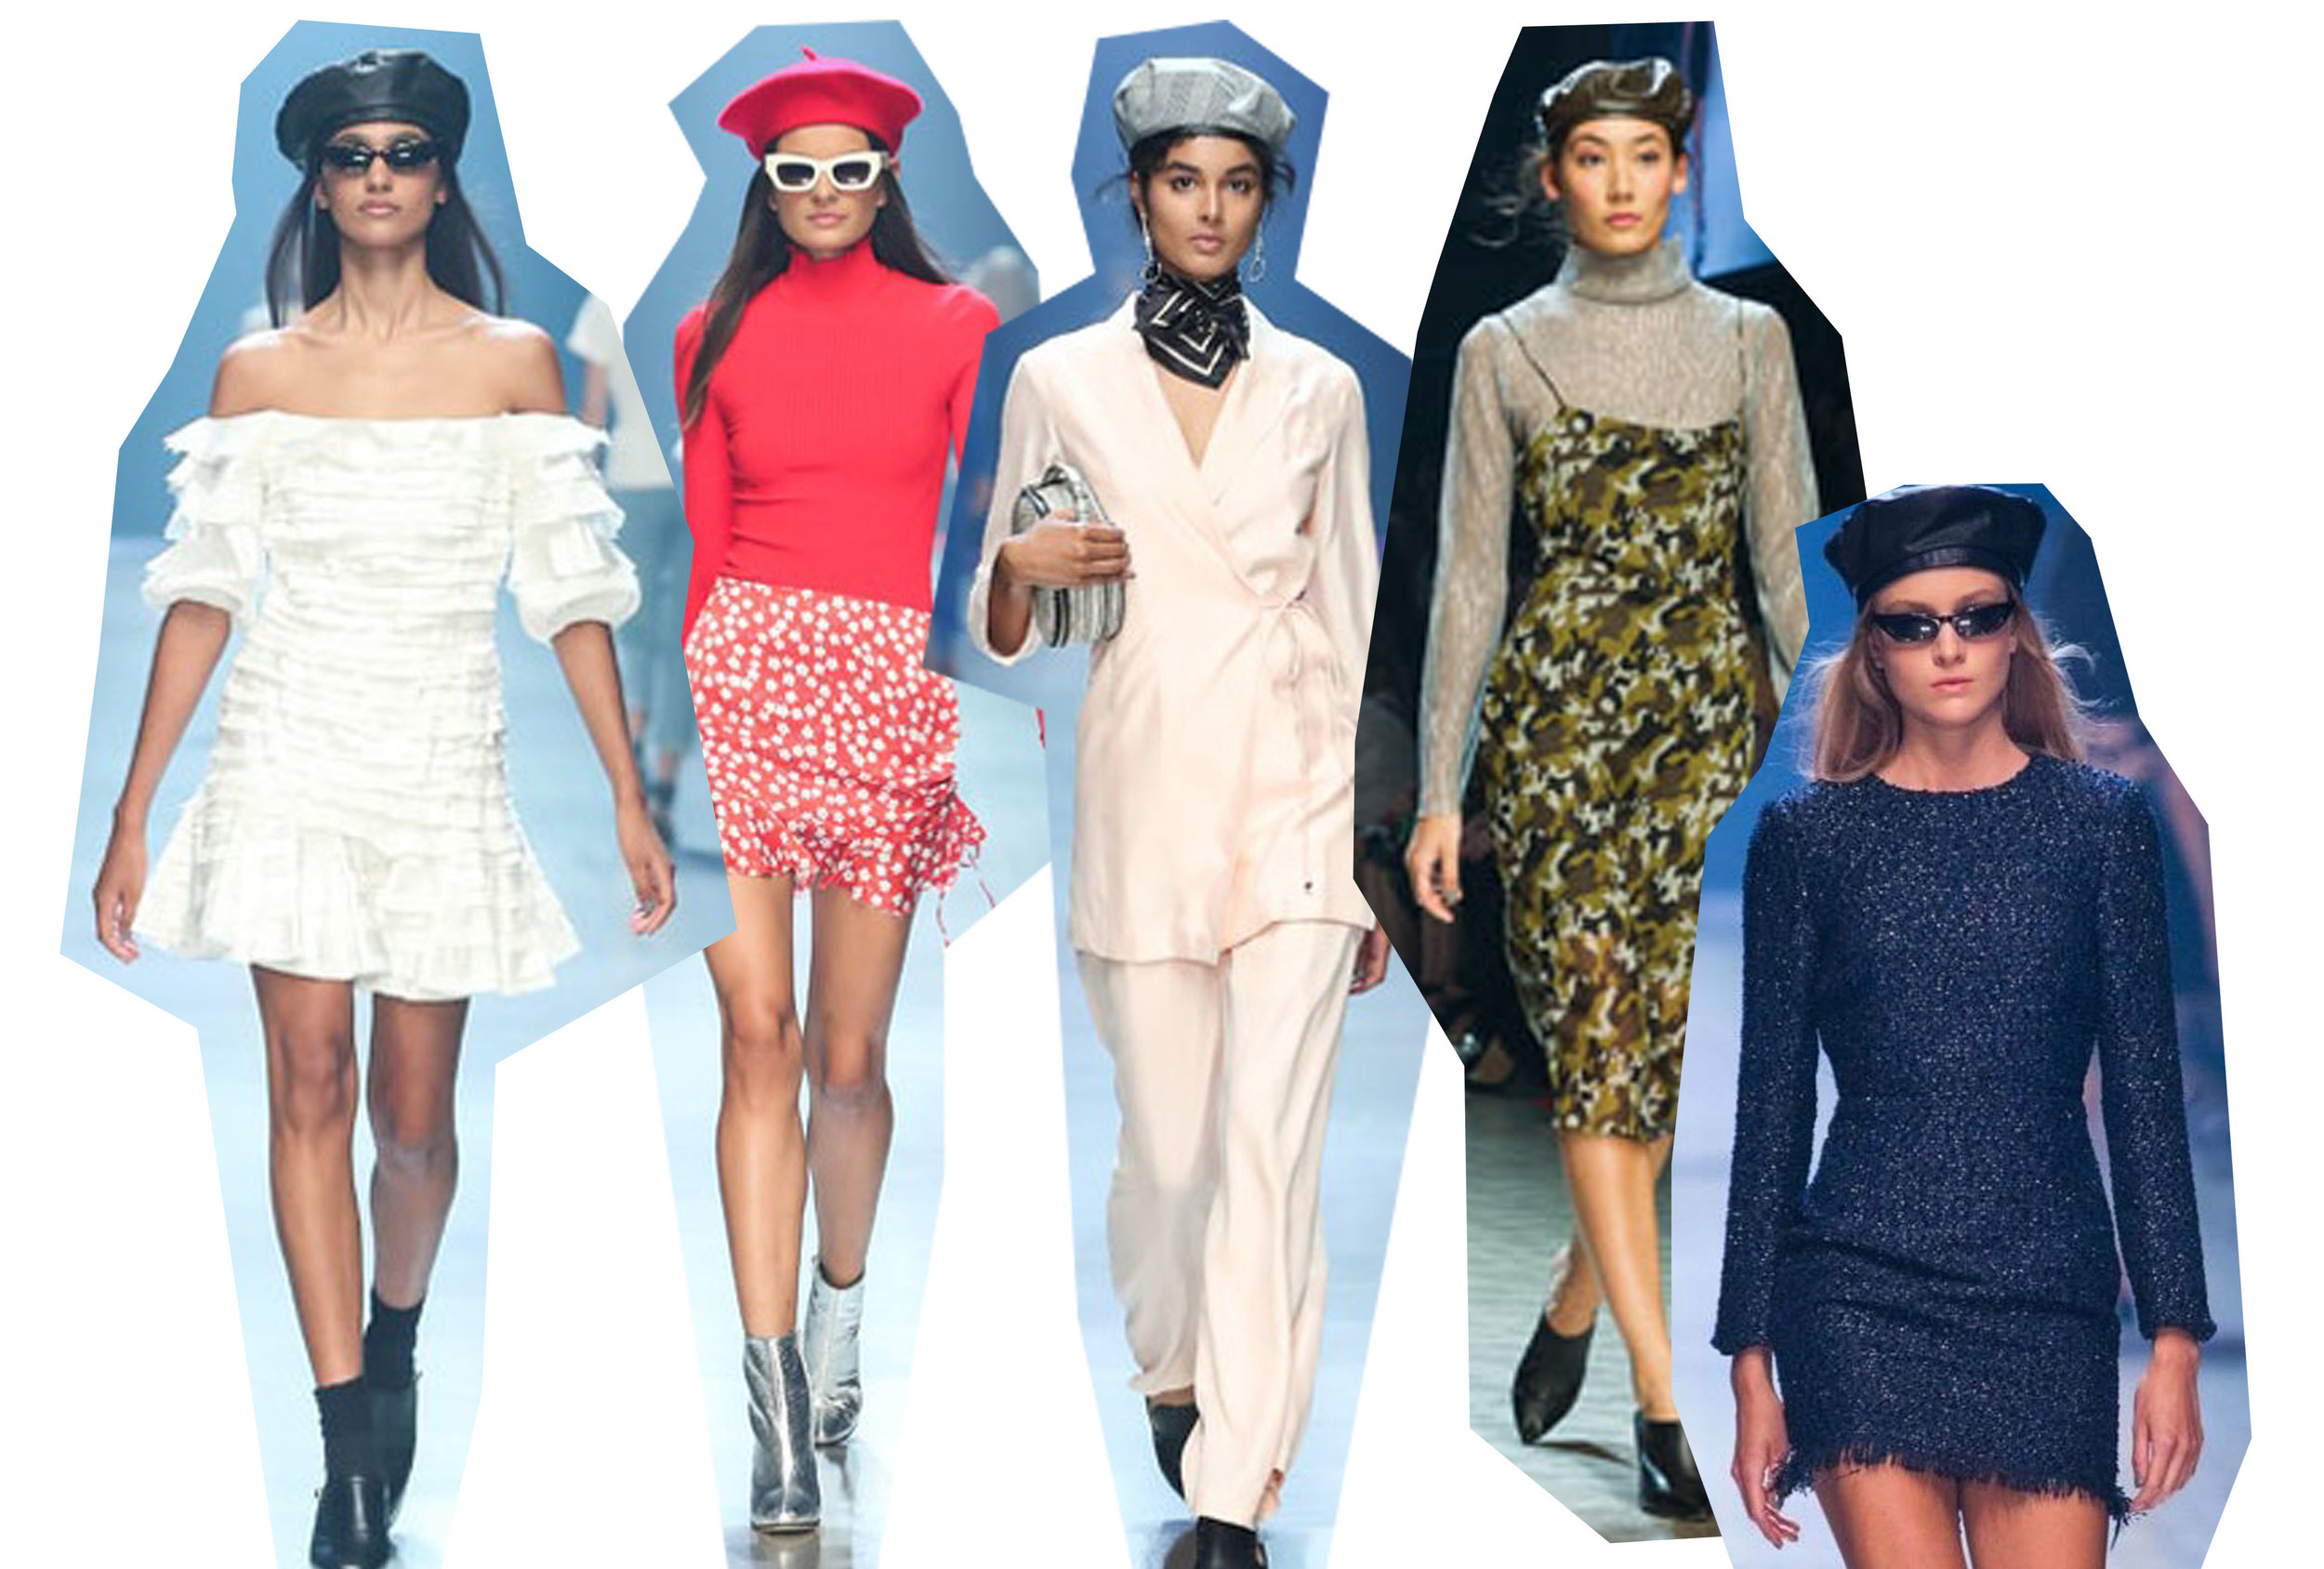 Beret's are everything this season, they stem from the huge Parisian trends that we've been seeing the past couple of years - think bangs, a-line mini skirts, and hair scarves. Bonus points if they're made of plastic leather.